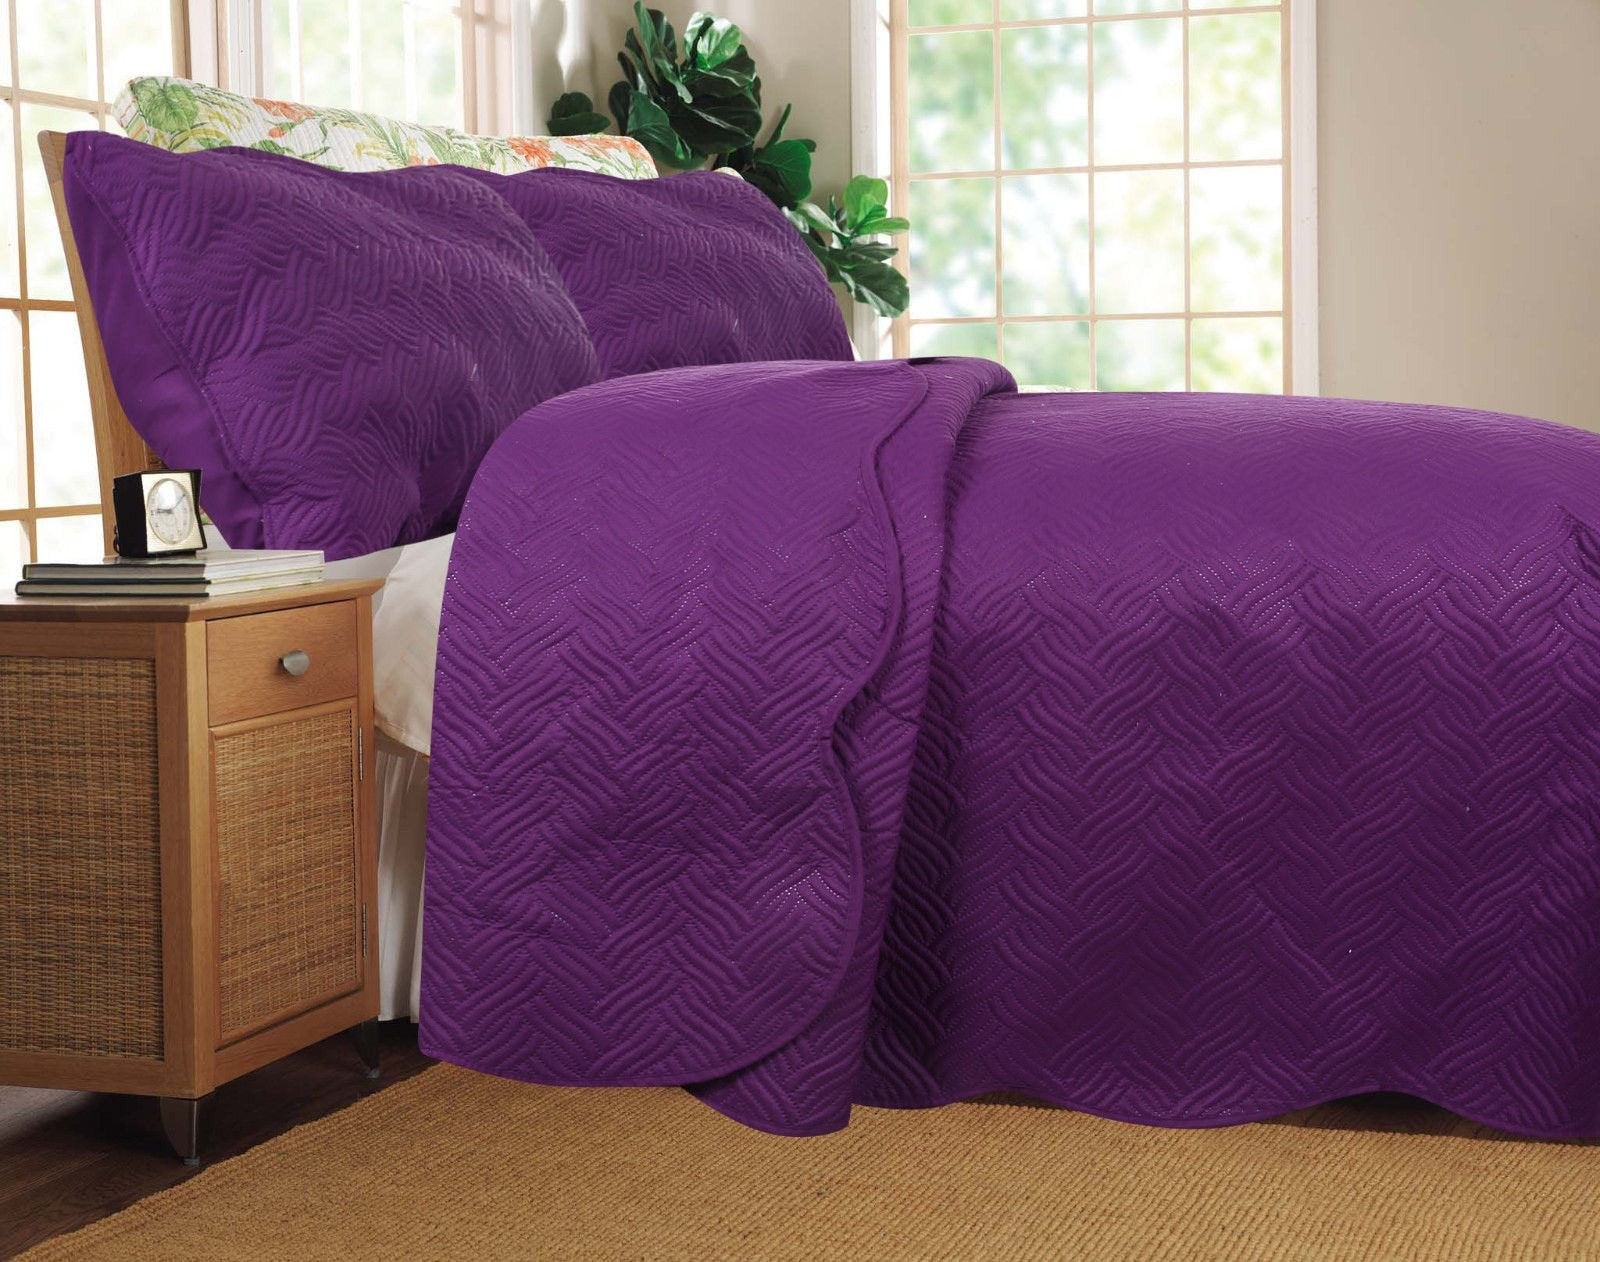 Solid Purple Thin & Lightweight Quilted Coverlet Bedspread Set - Aiko 360